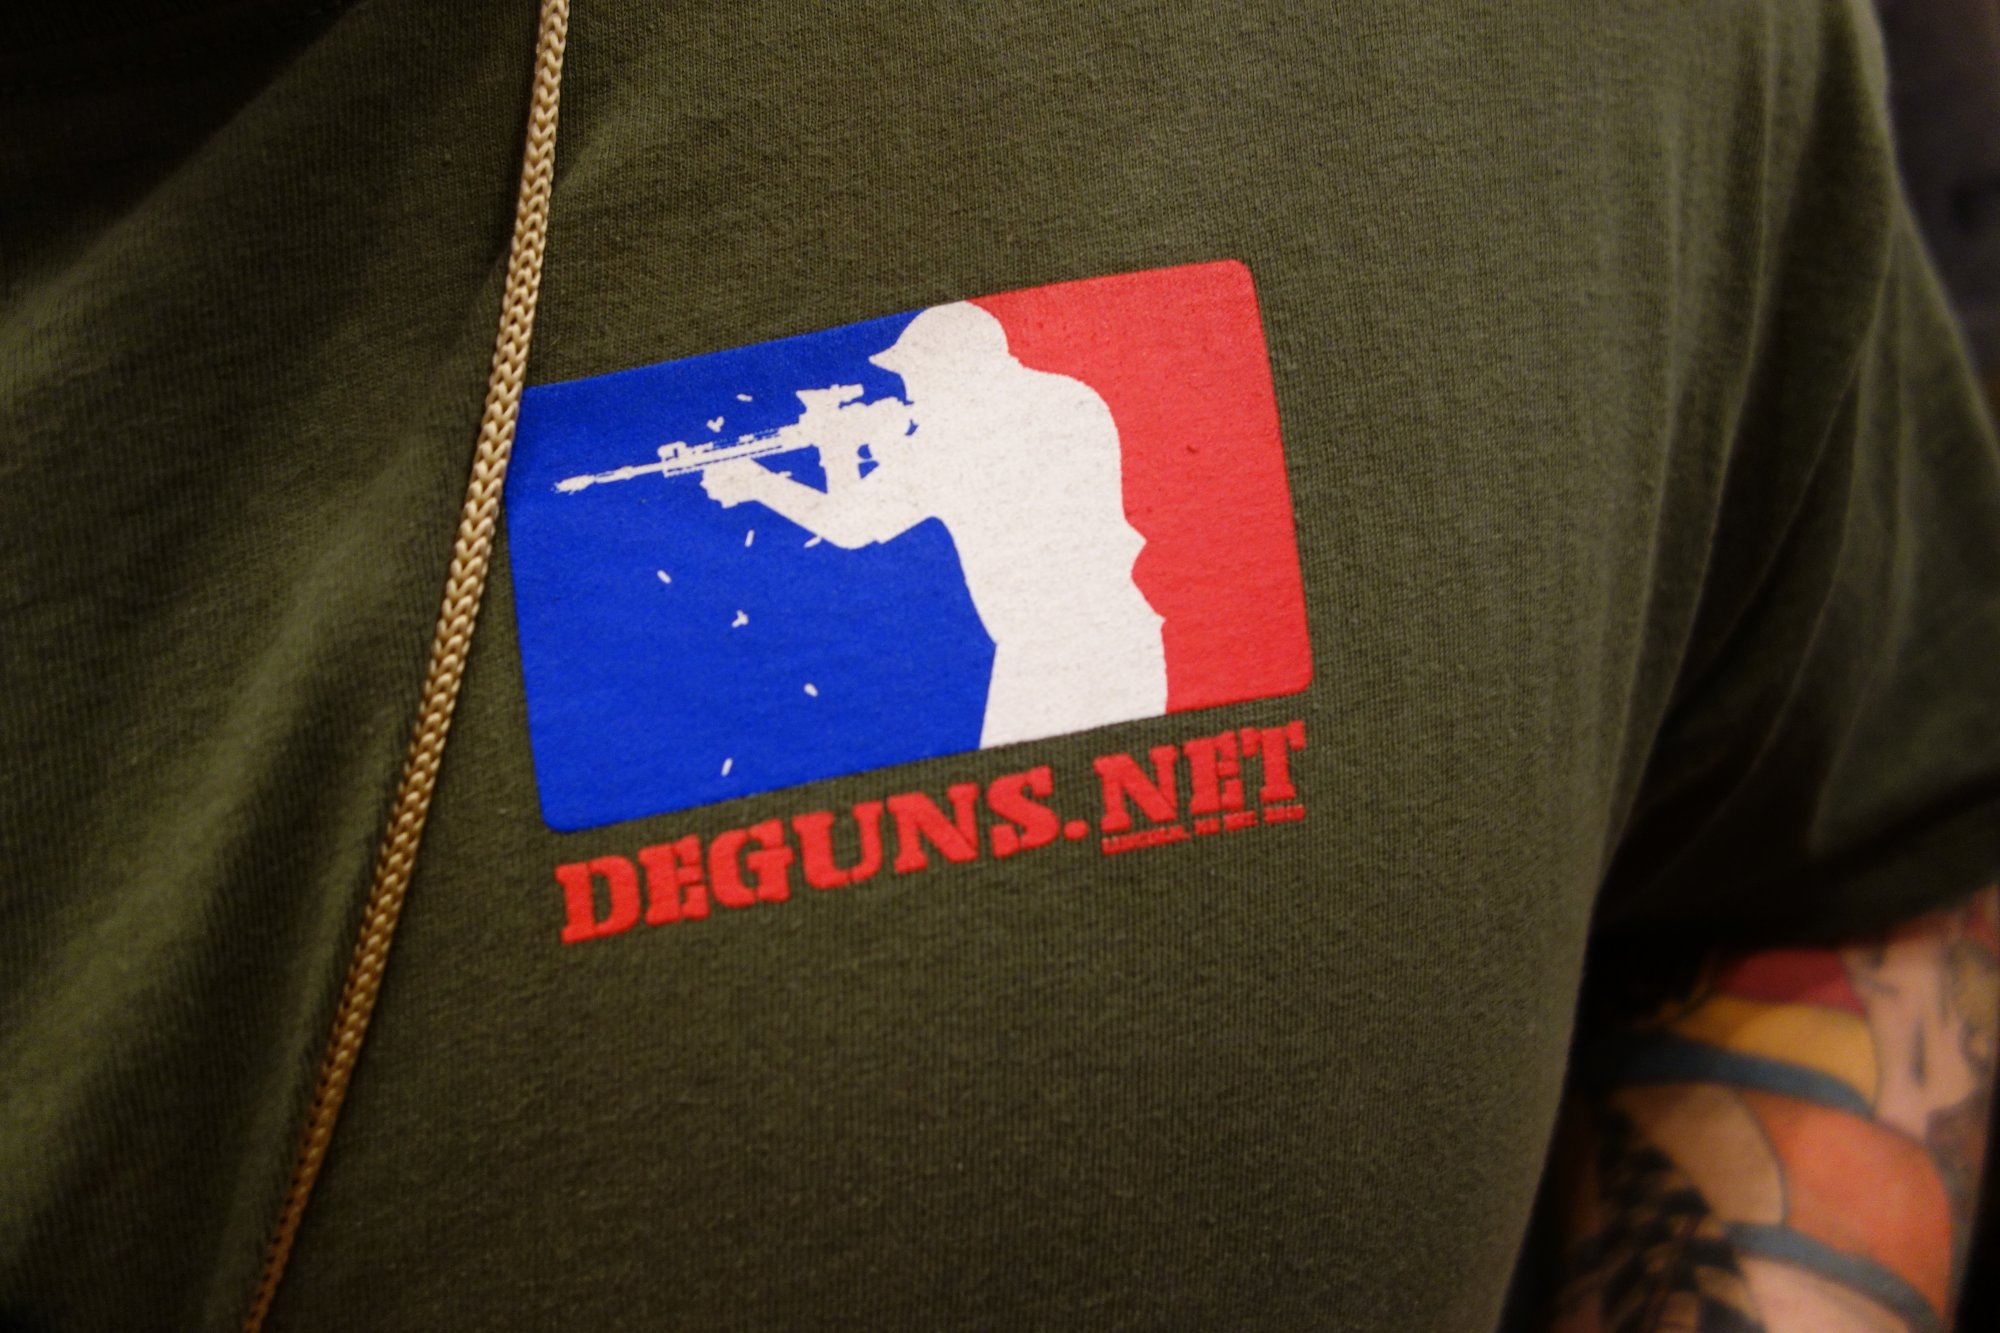 DEGUNS.net Discount Enterprises Guns Tactical Shooter Logo T Shirt SHOT Show 2013 David Crane DefenseReview.com DR 2 Cool T Shirt Alert: DEGUNS.net (Discount Enterprises Guns) Tactical Shooter Firing AR 15 Carbine Logo T Shirt